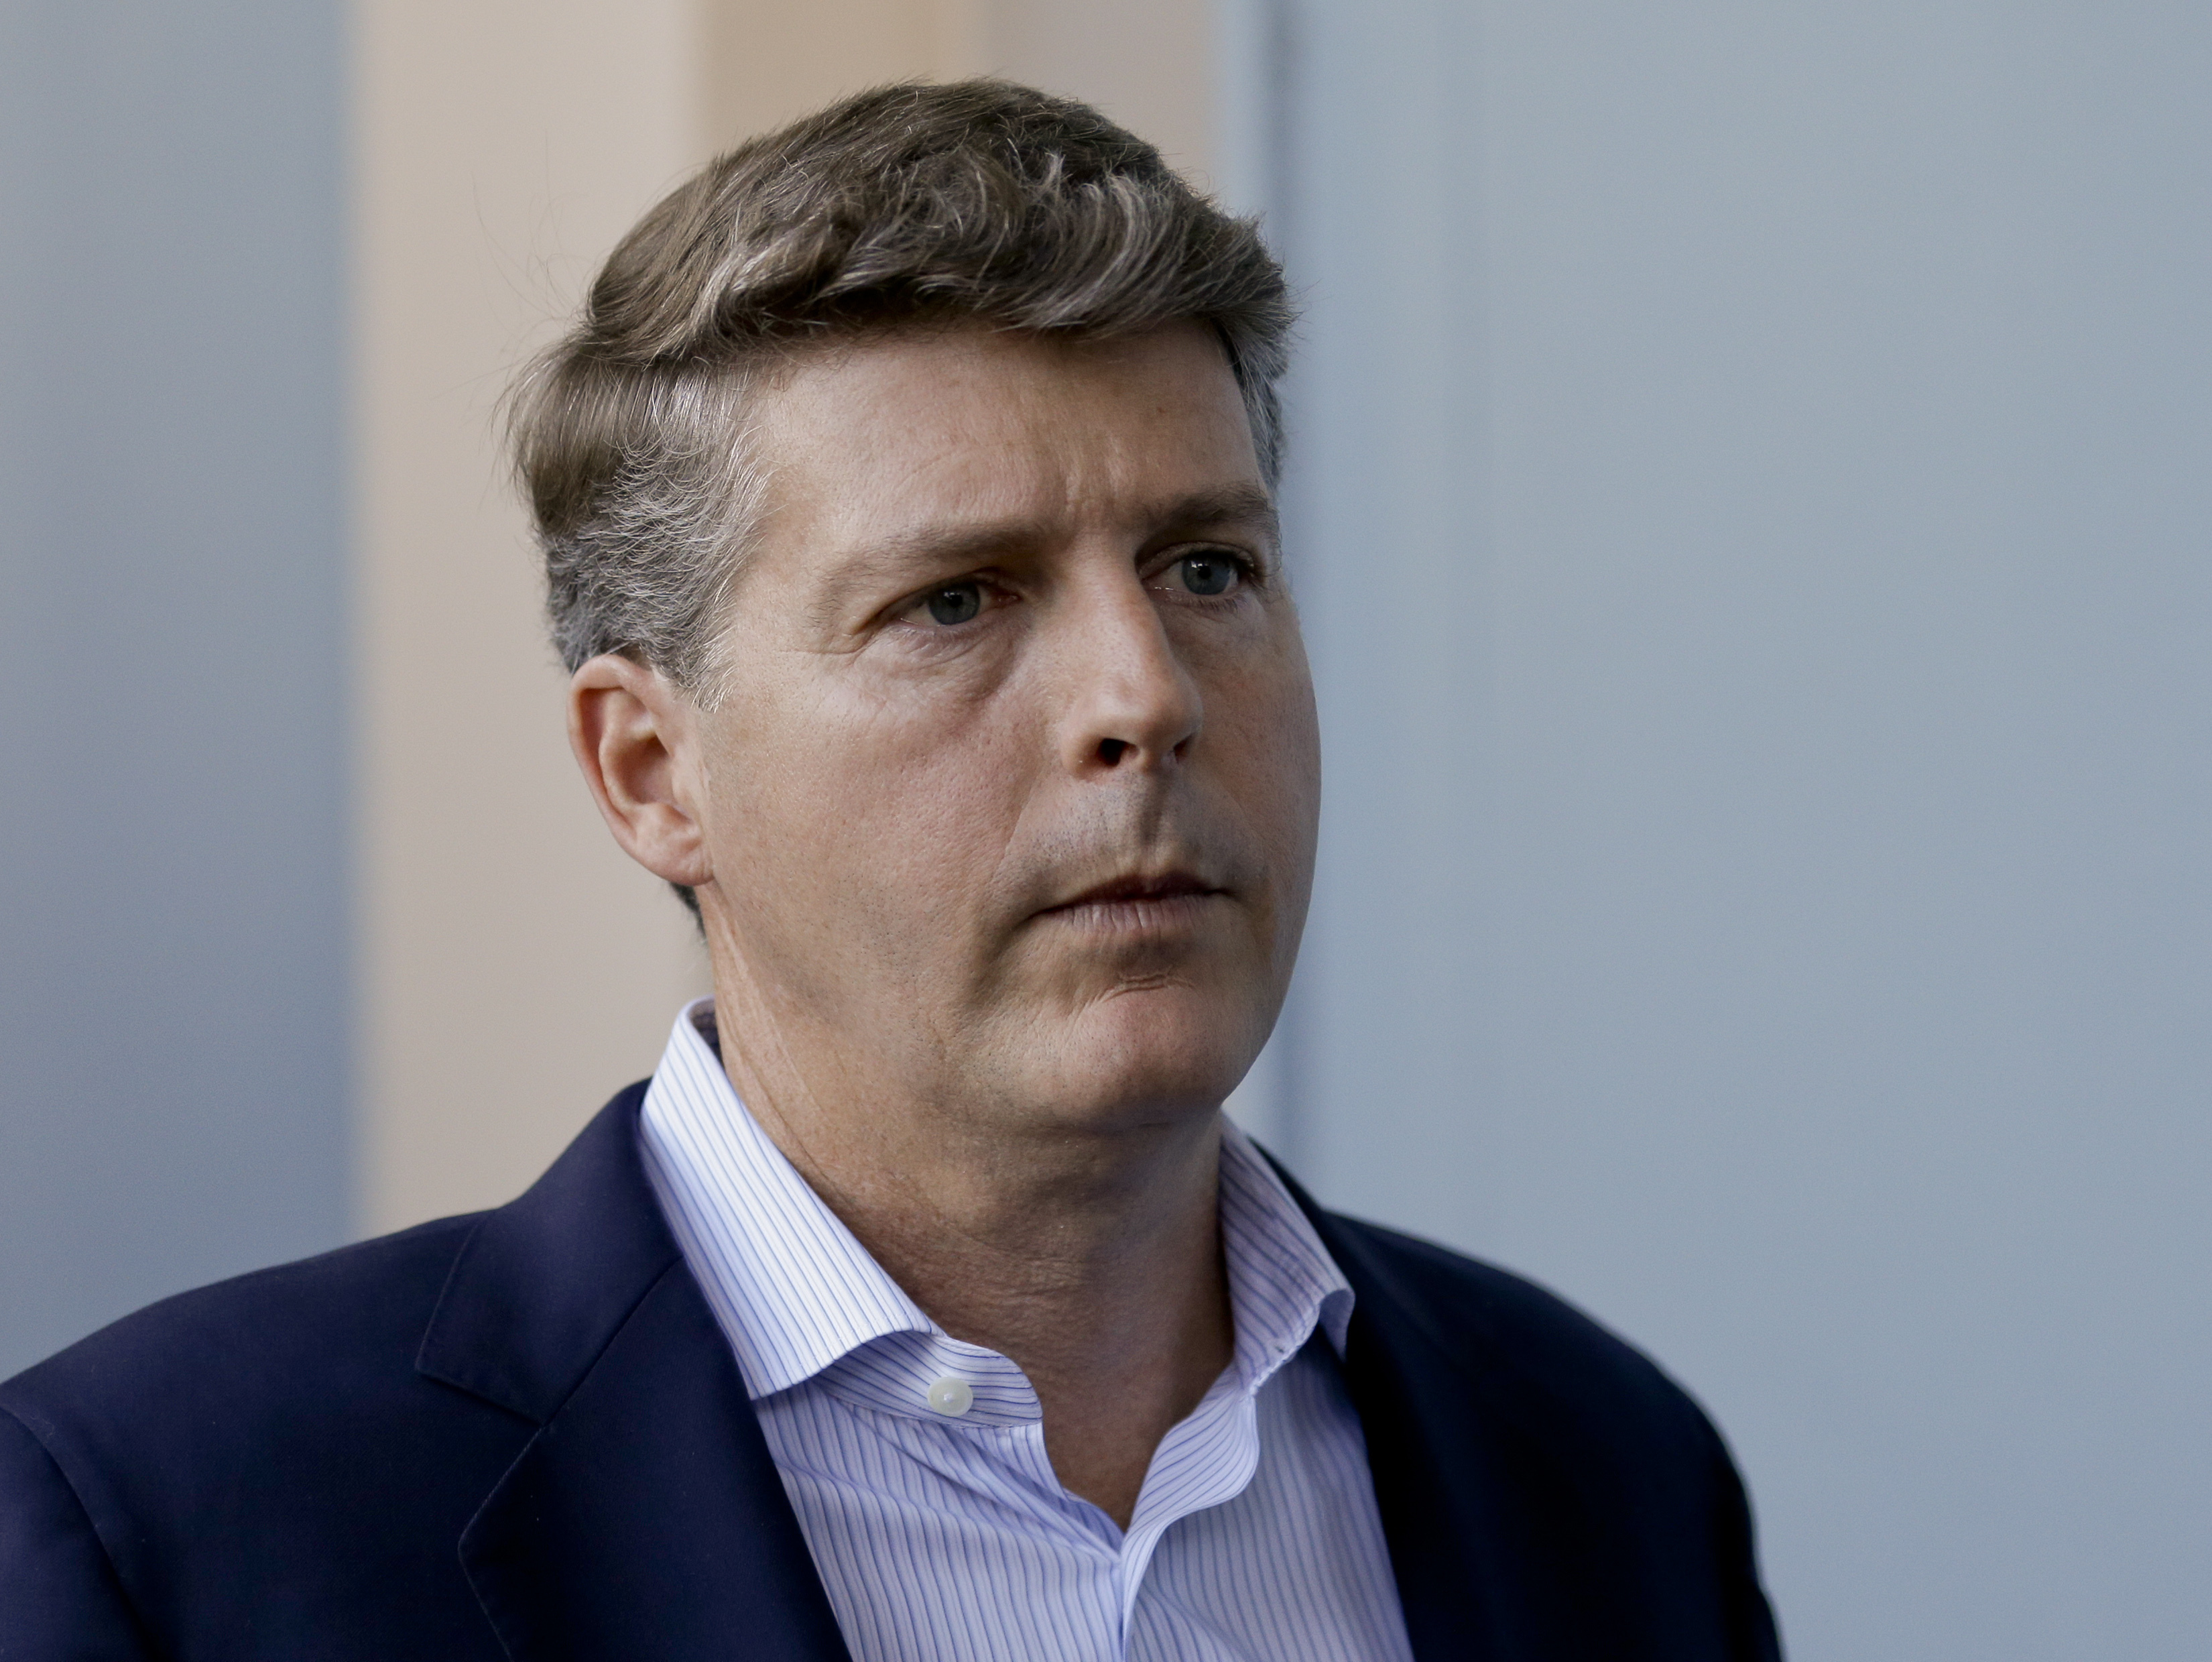 Steinbrenner would consider boosting payroll to pursue title